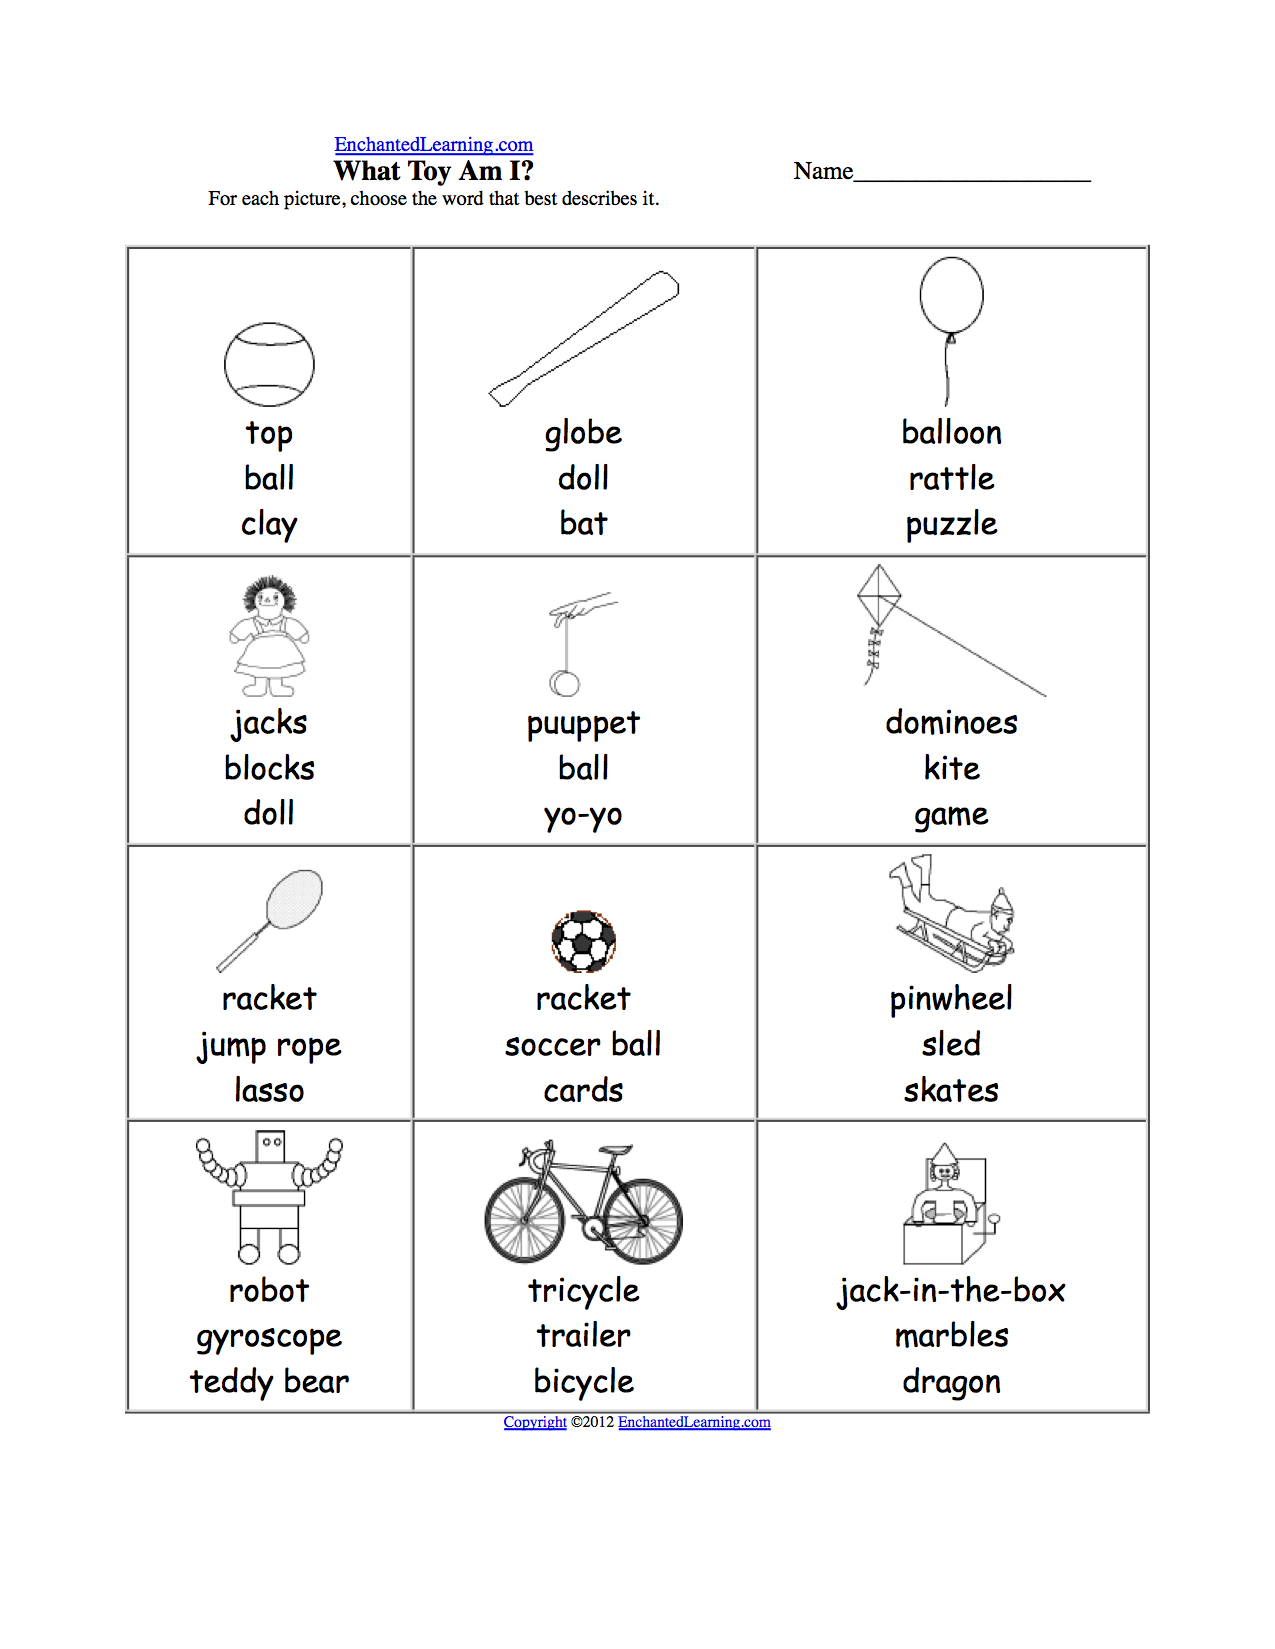 worksheet Spelling Worksheets spelling worksheets sports at enchantedlearning com